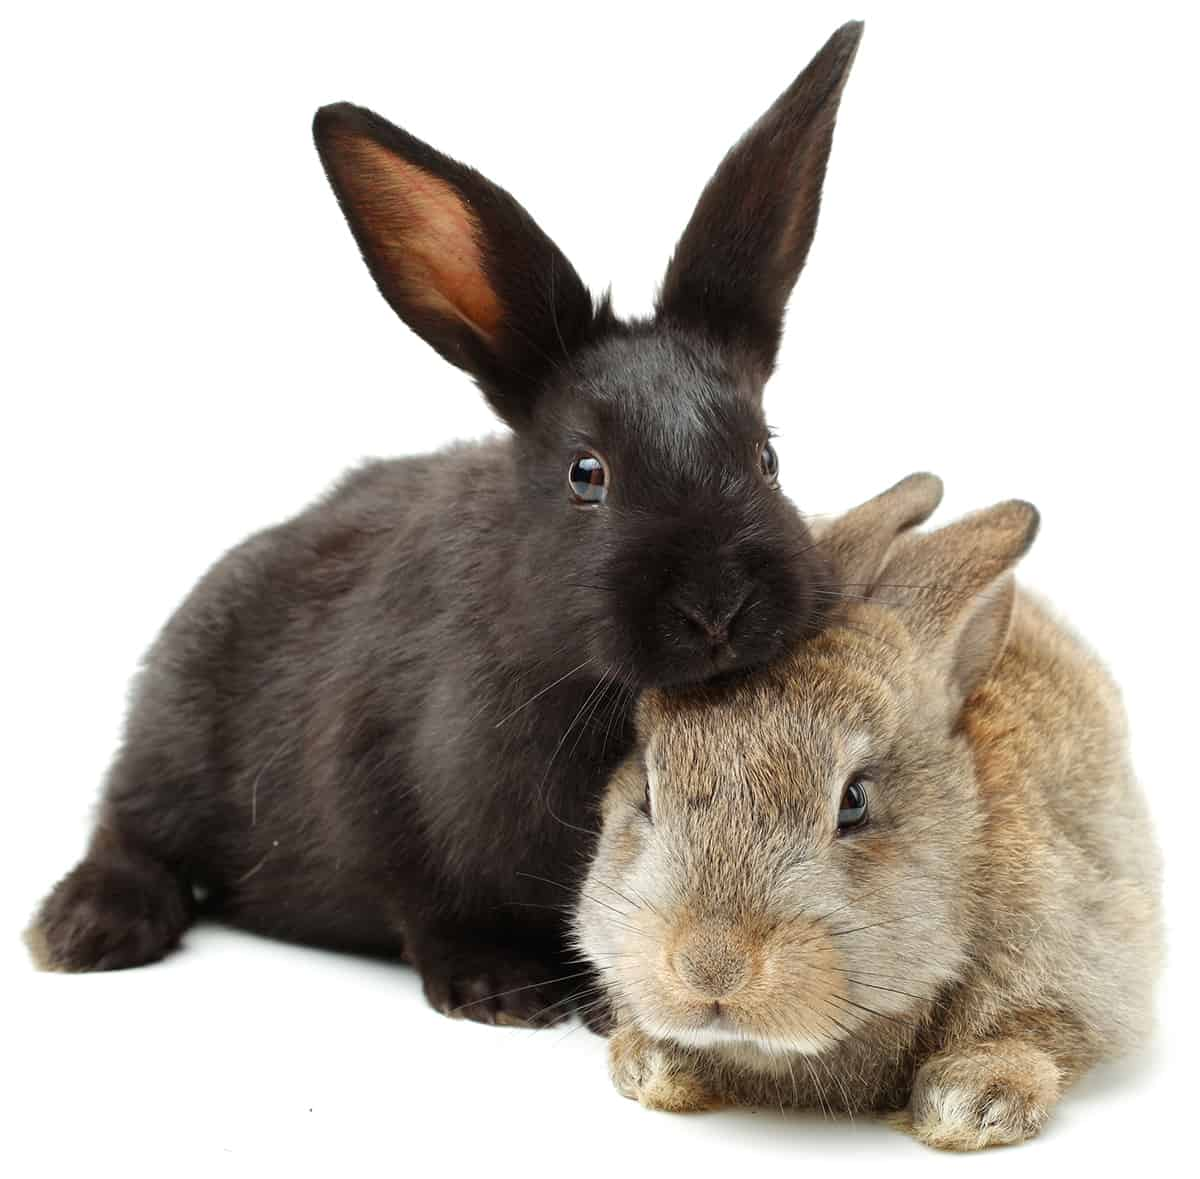 Bunny adoption